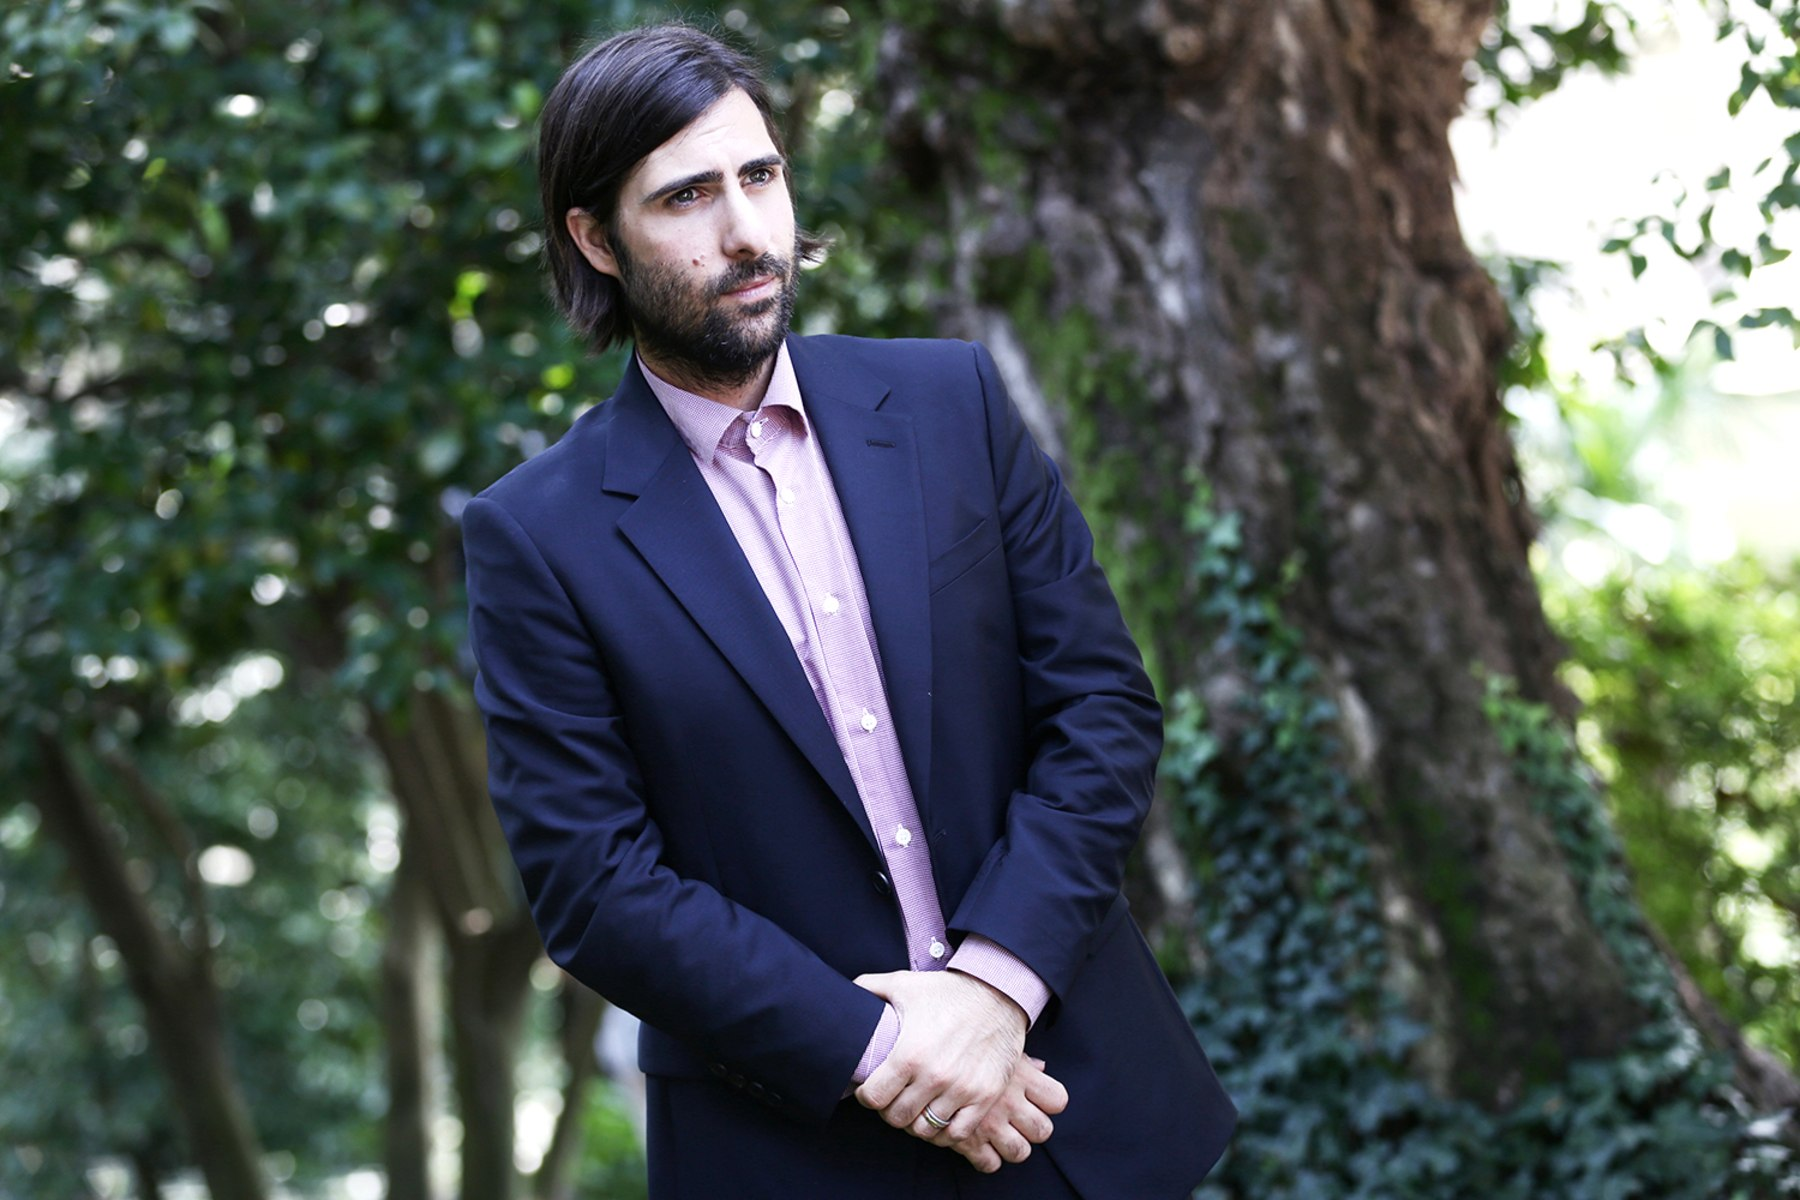 Image: Jason Schwartzman Portrait Session - 67th Locarno Film Festival